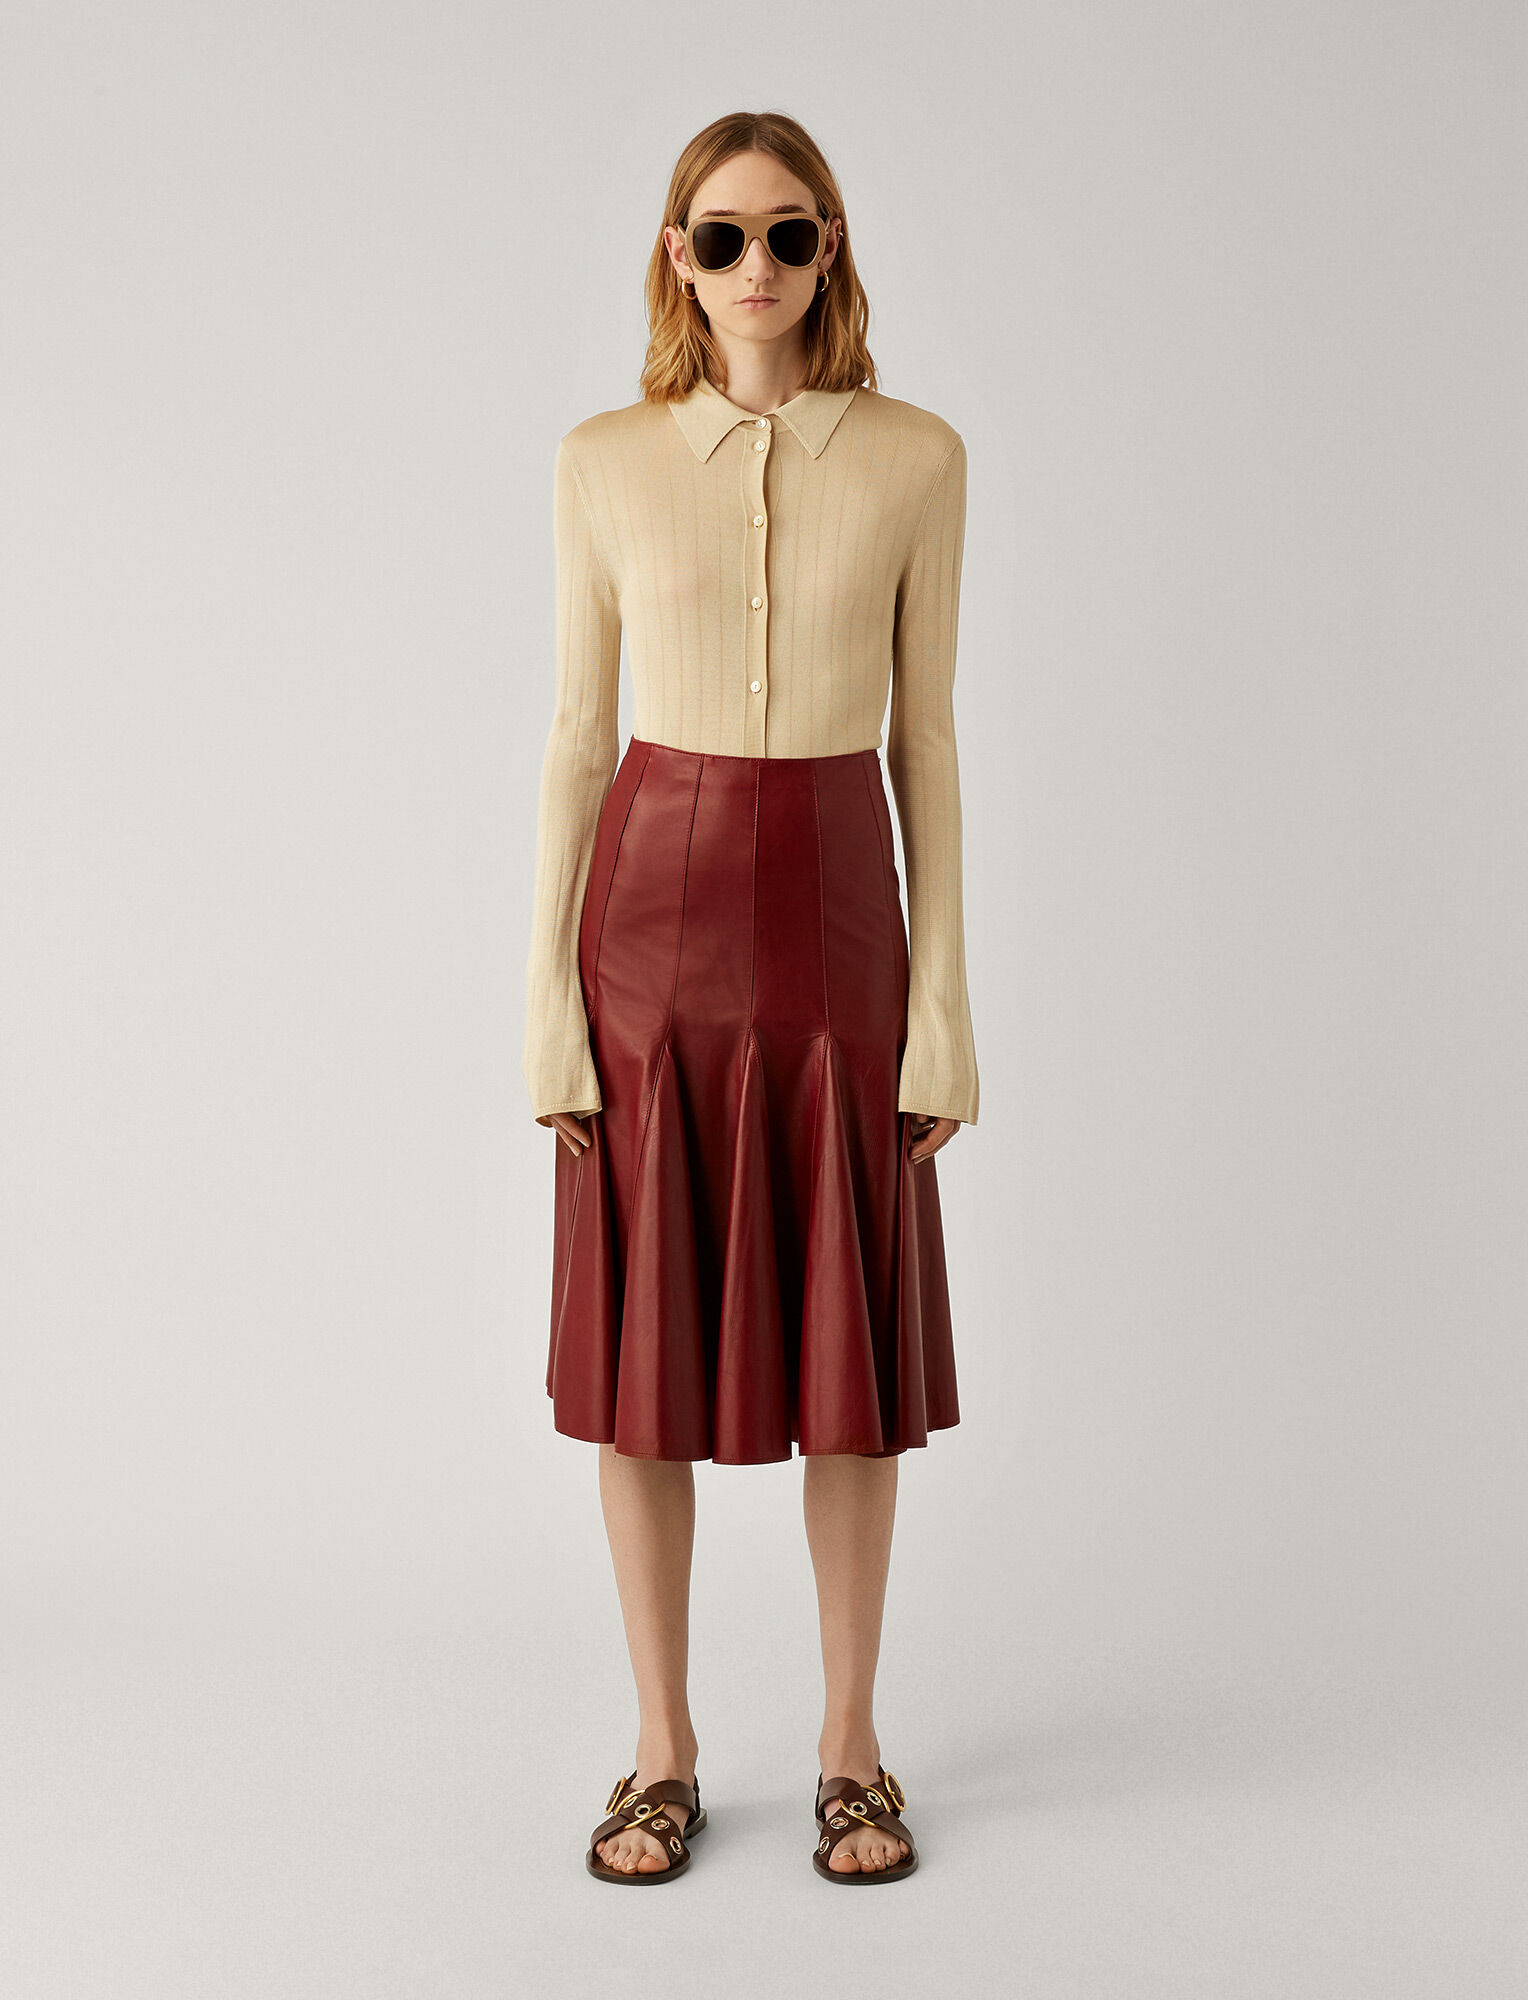 Joseph, Sid Nappa Leather Skirt, in AMARONE